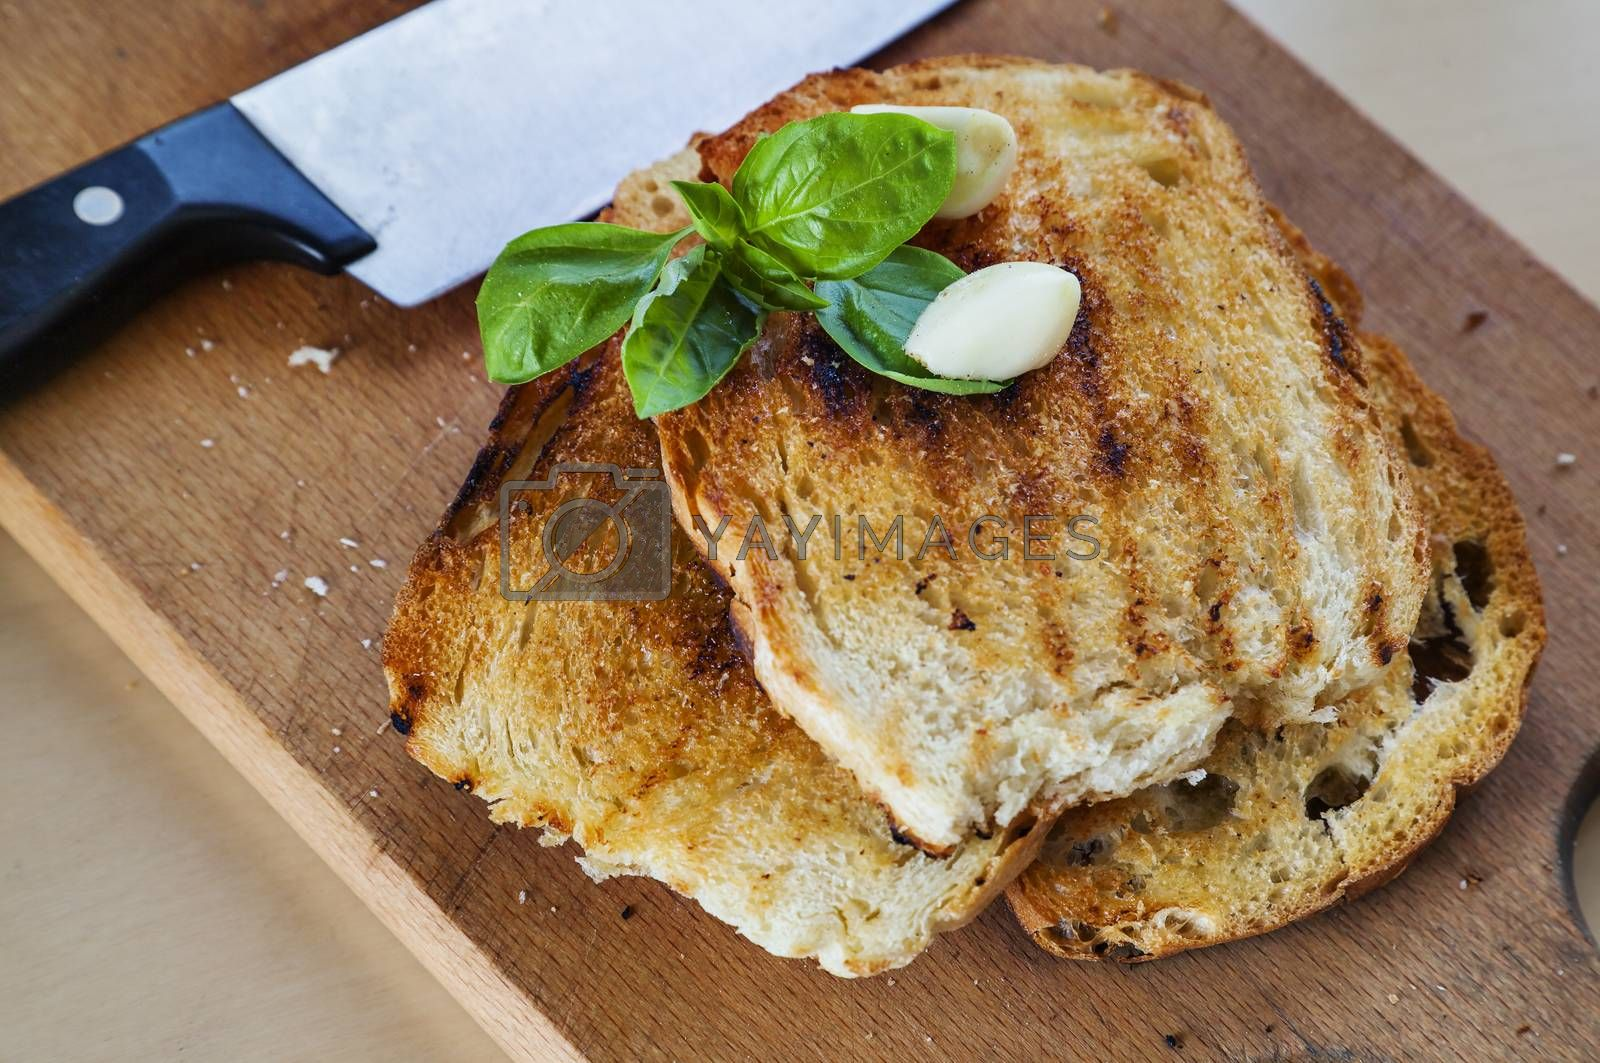 Three roasted slices of bread with garlic, fresh basil and a knife on the side.